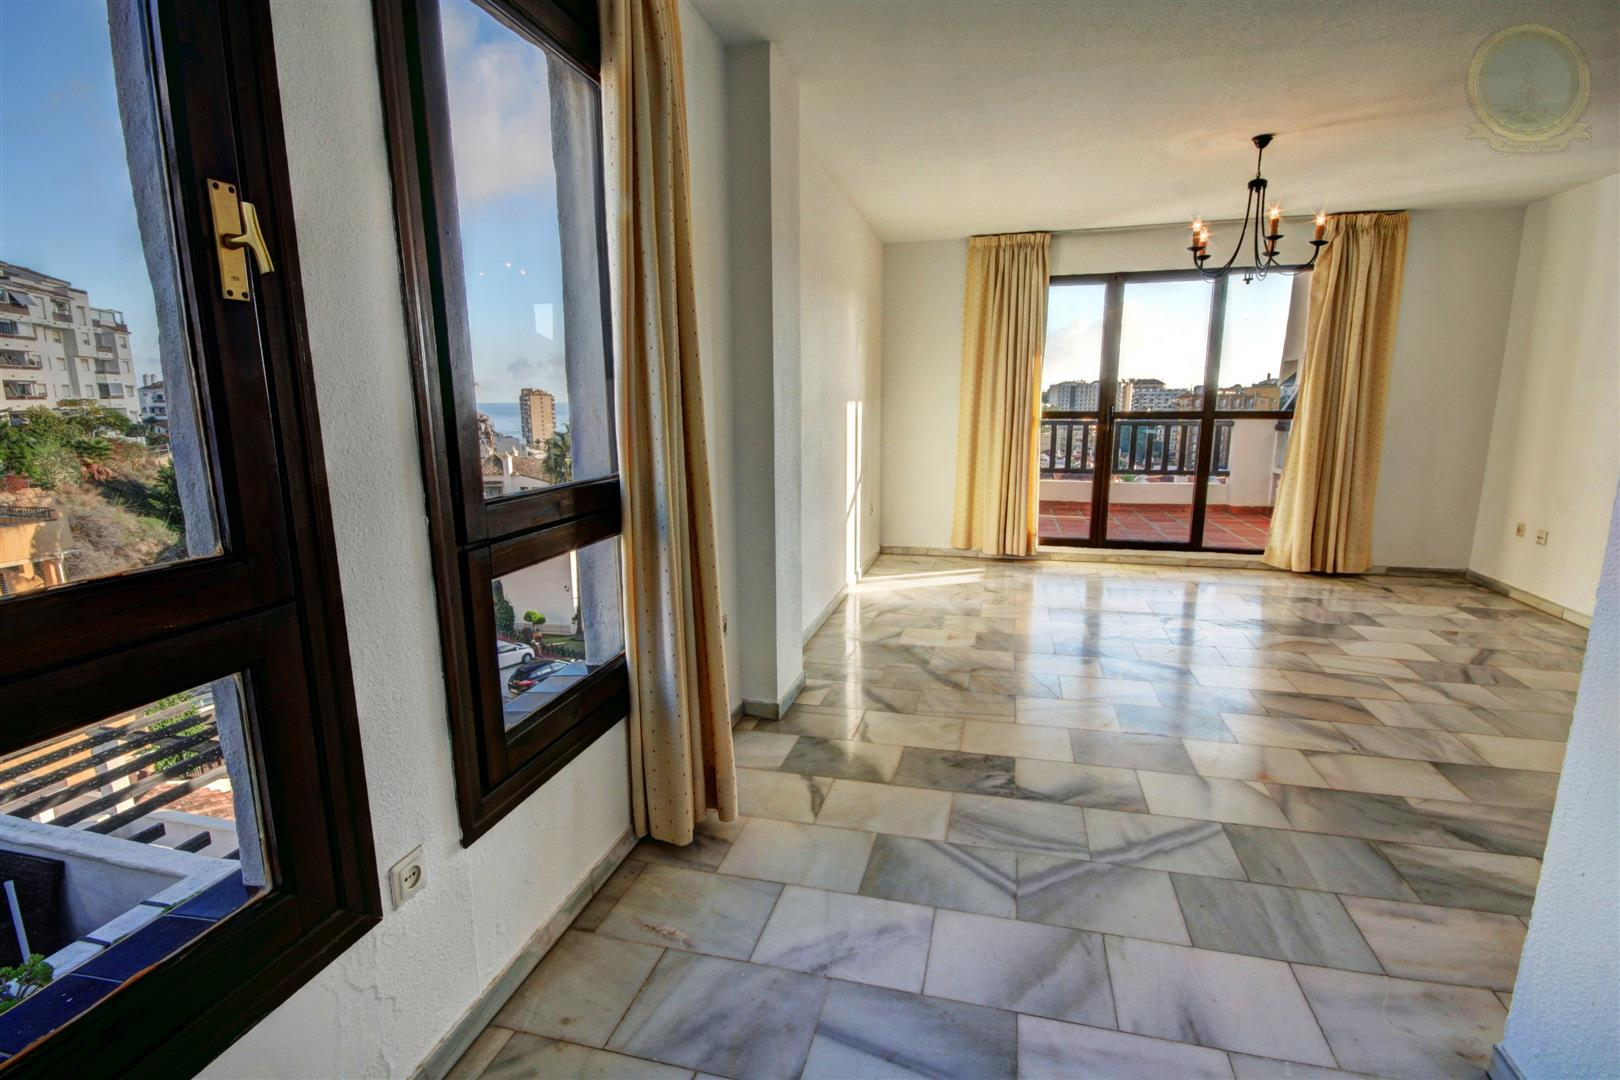 1 bed apartment for sale on Pueblo Evita - lounge